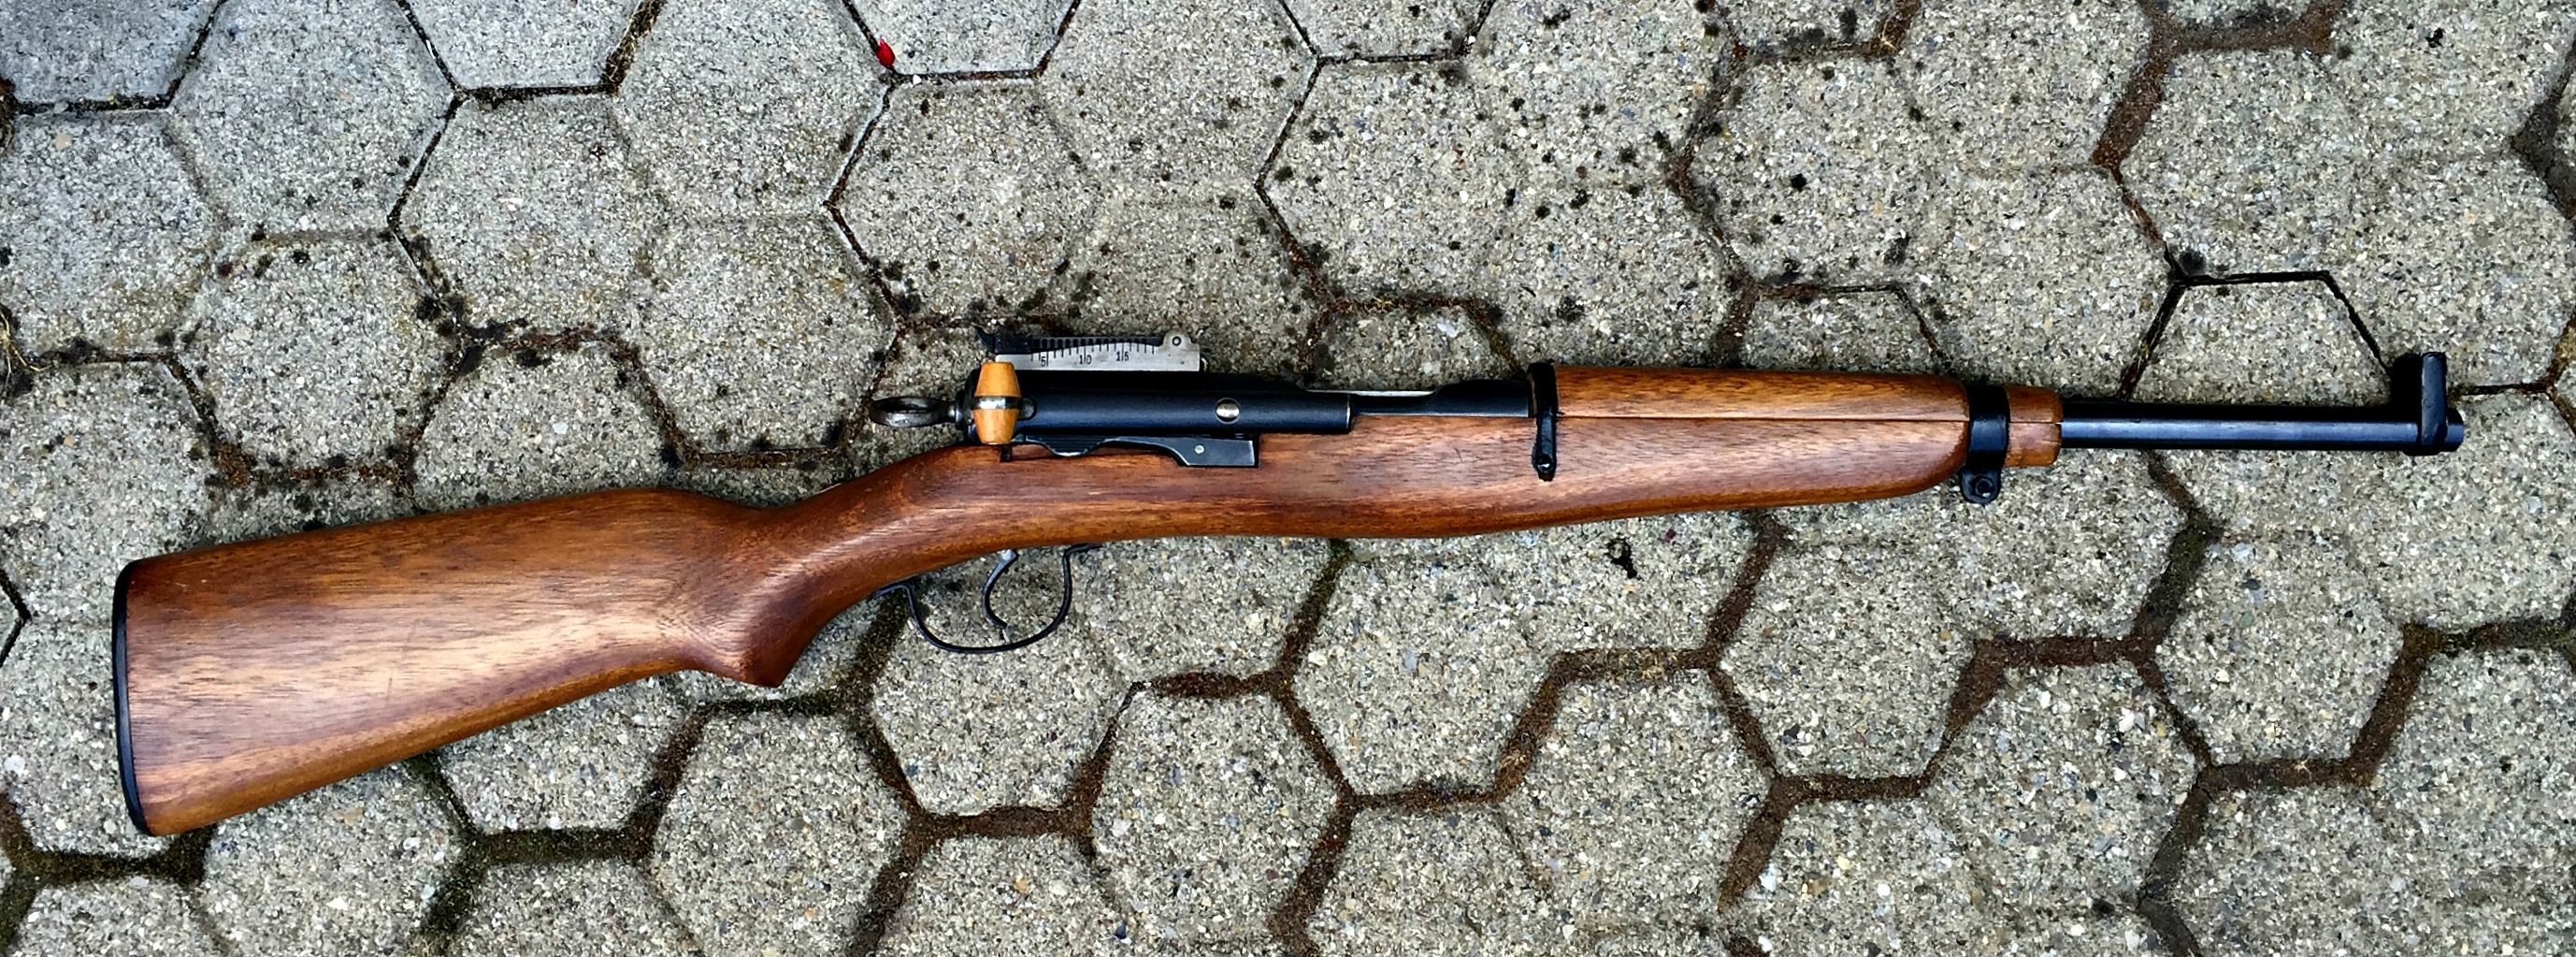 Armslist for sale yugoslav 98k aka preduzece 44 - Type 53 The Chinese Version Of The Russian M44 Mosin Nagant Carbine With The Side Folding Bayonet About 5 To 7 Years Ago A Decent Supply Of These